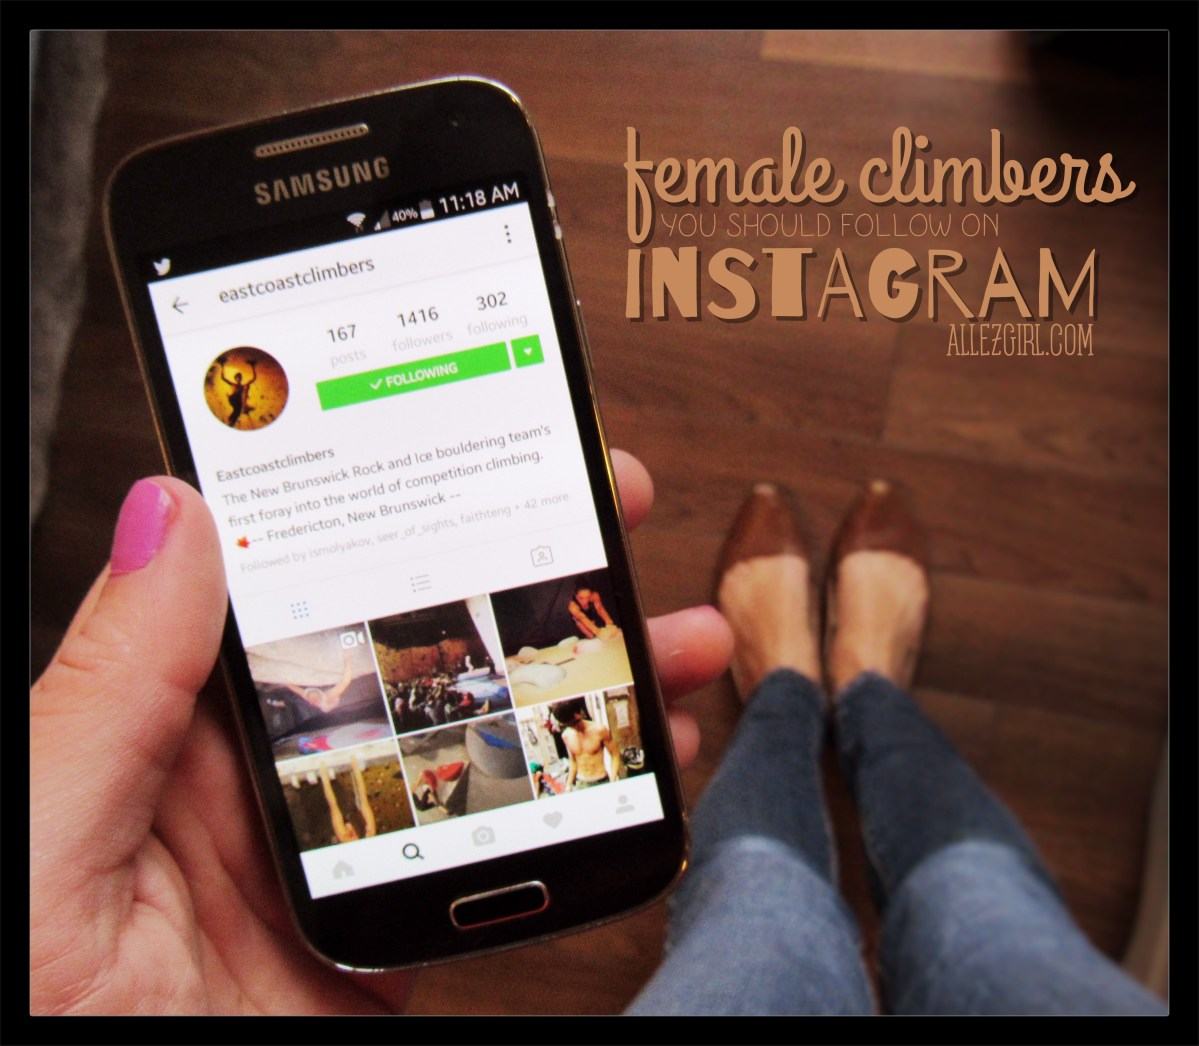 10 Female Climbers You Should Follow on Instagram